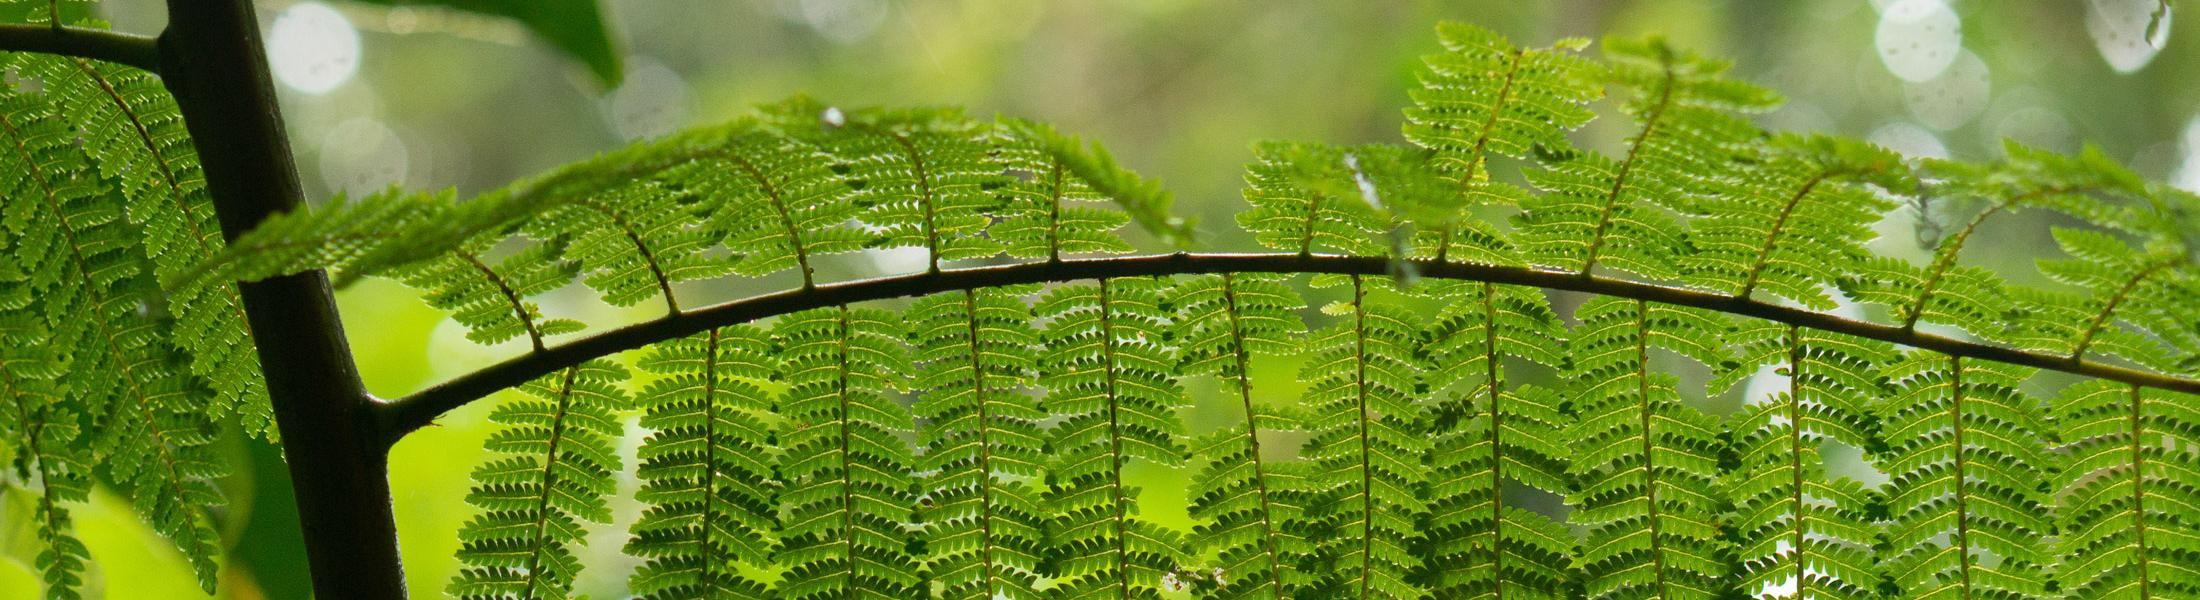 Close-up image of a delicate green fern in a cloud forest.